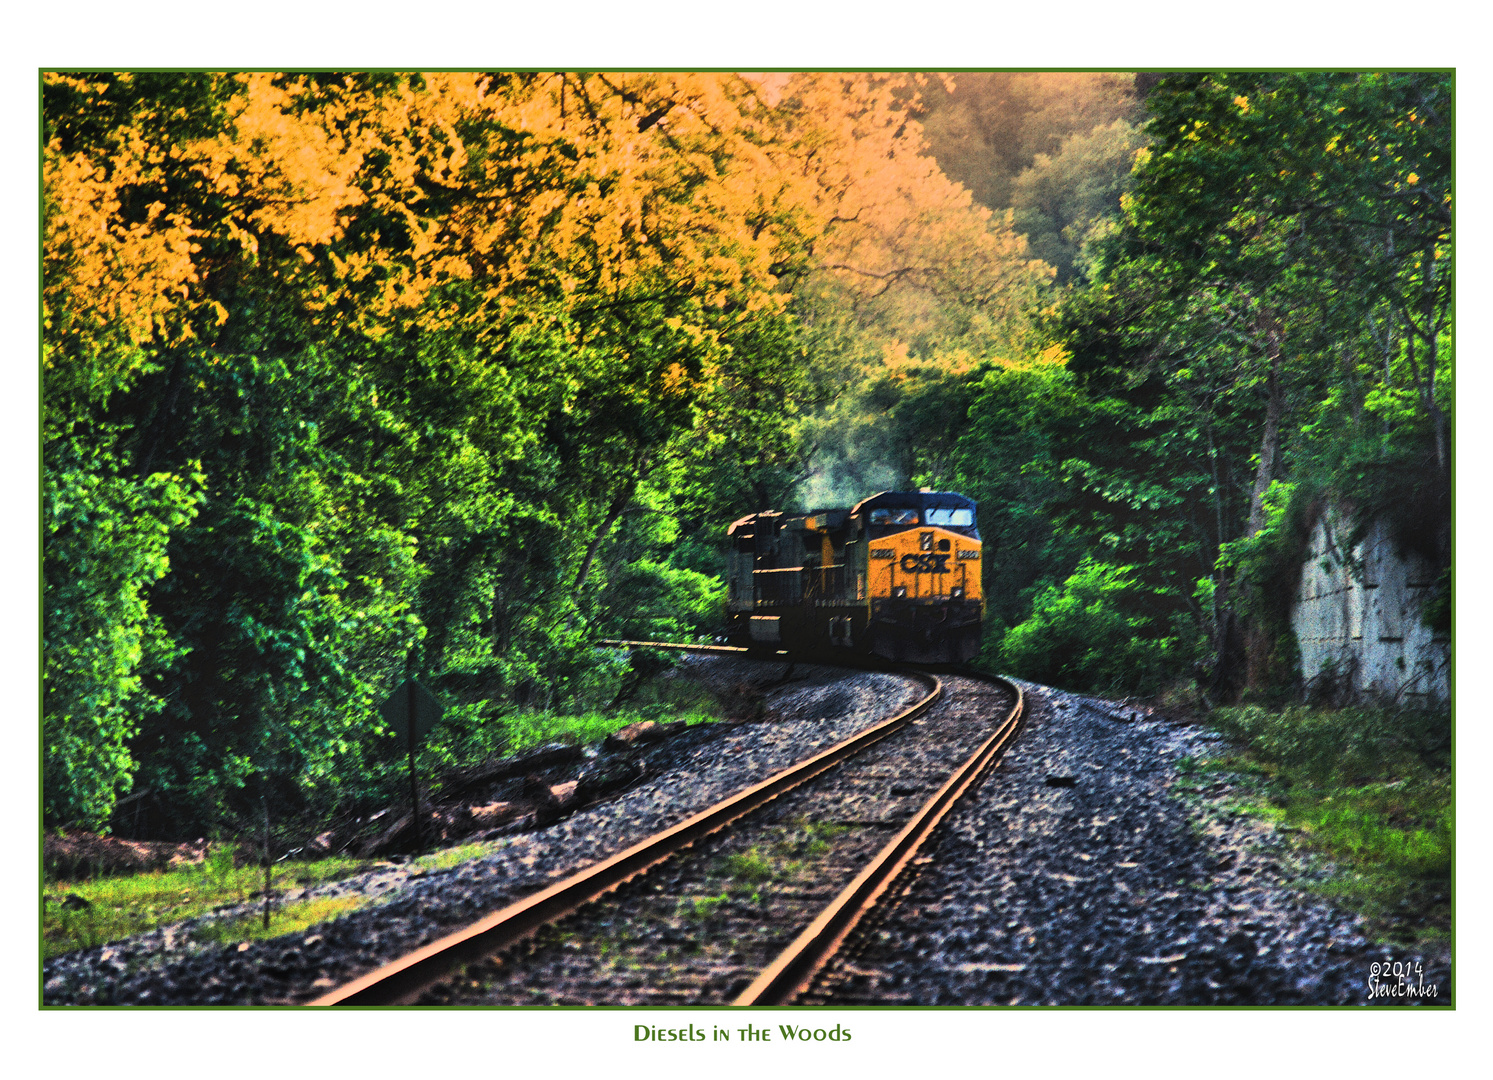 Diesels in the Woods - an Impression